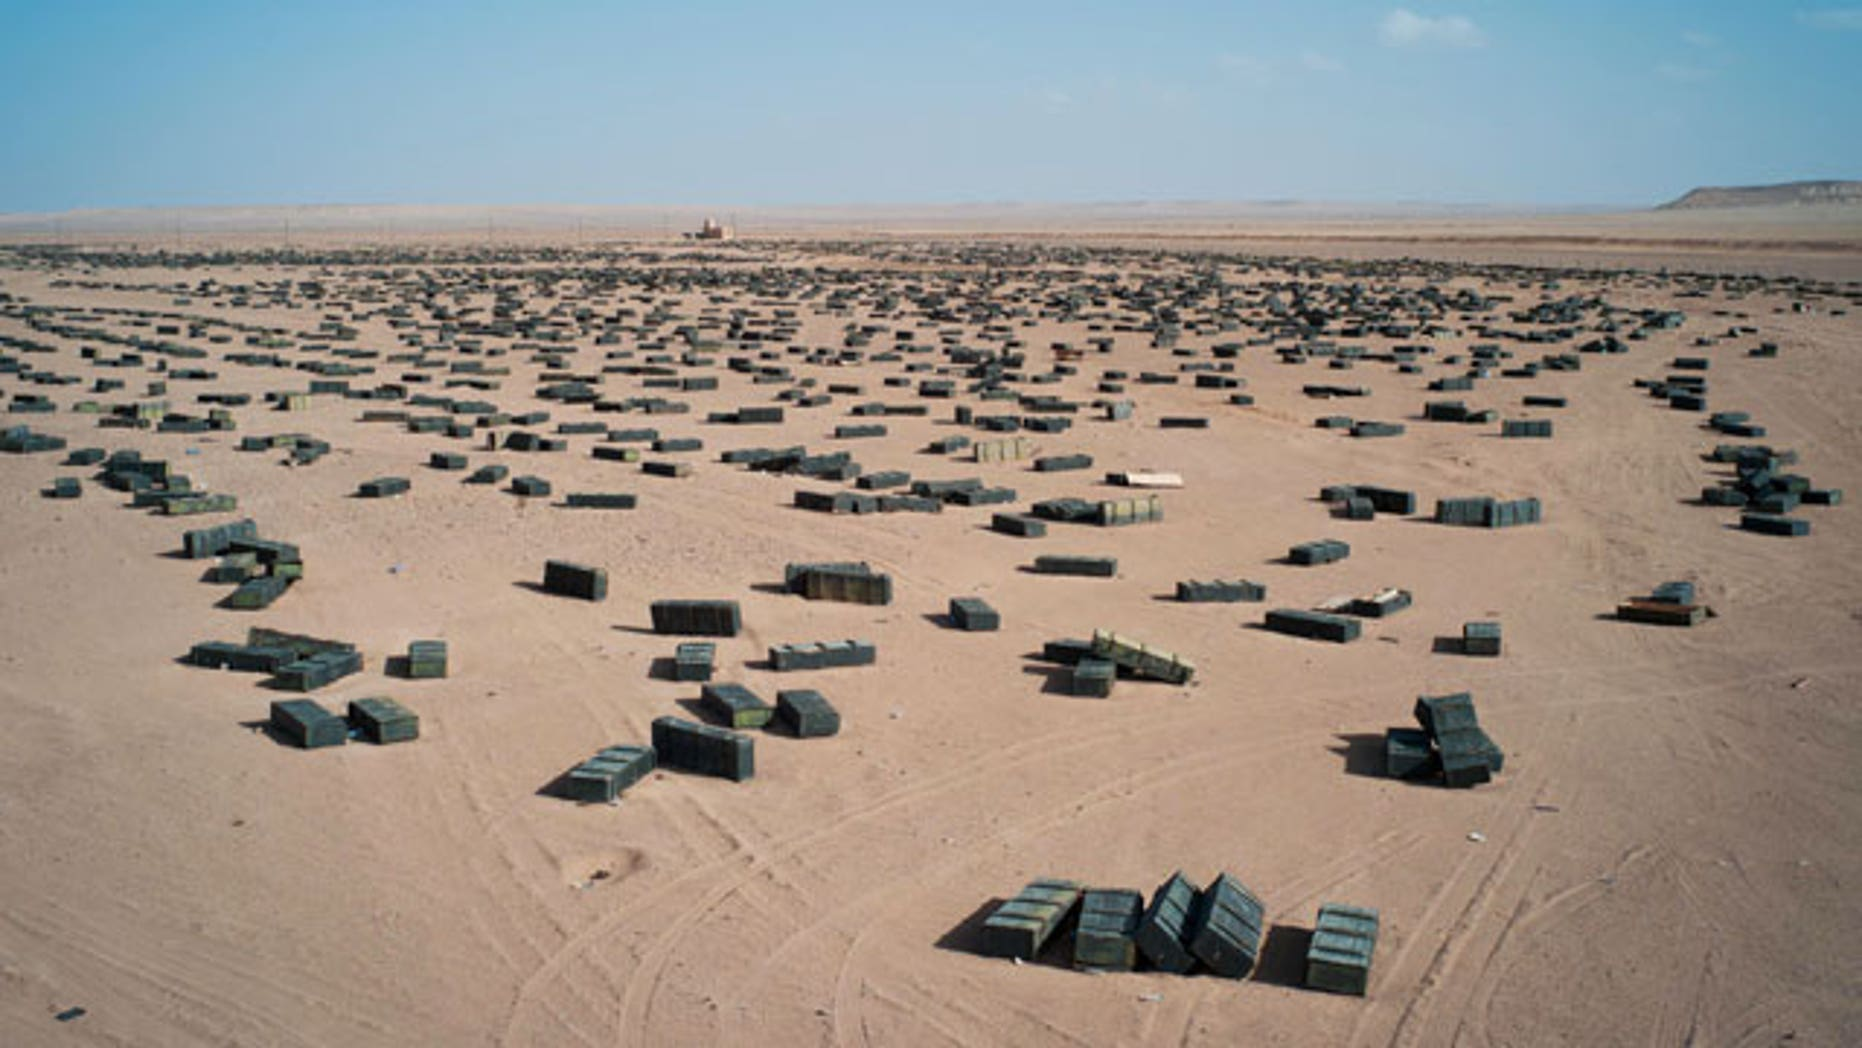 October 26, 2011 file photo: Ammunition crates are seen at an unguarded storage facility in the desert, some 62 miles south of Sirte, Libya.